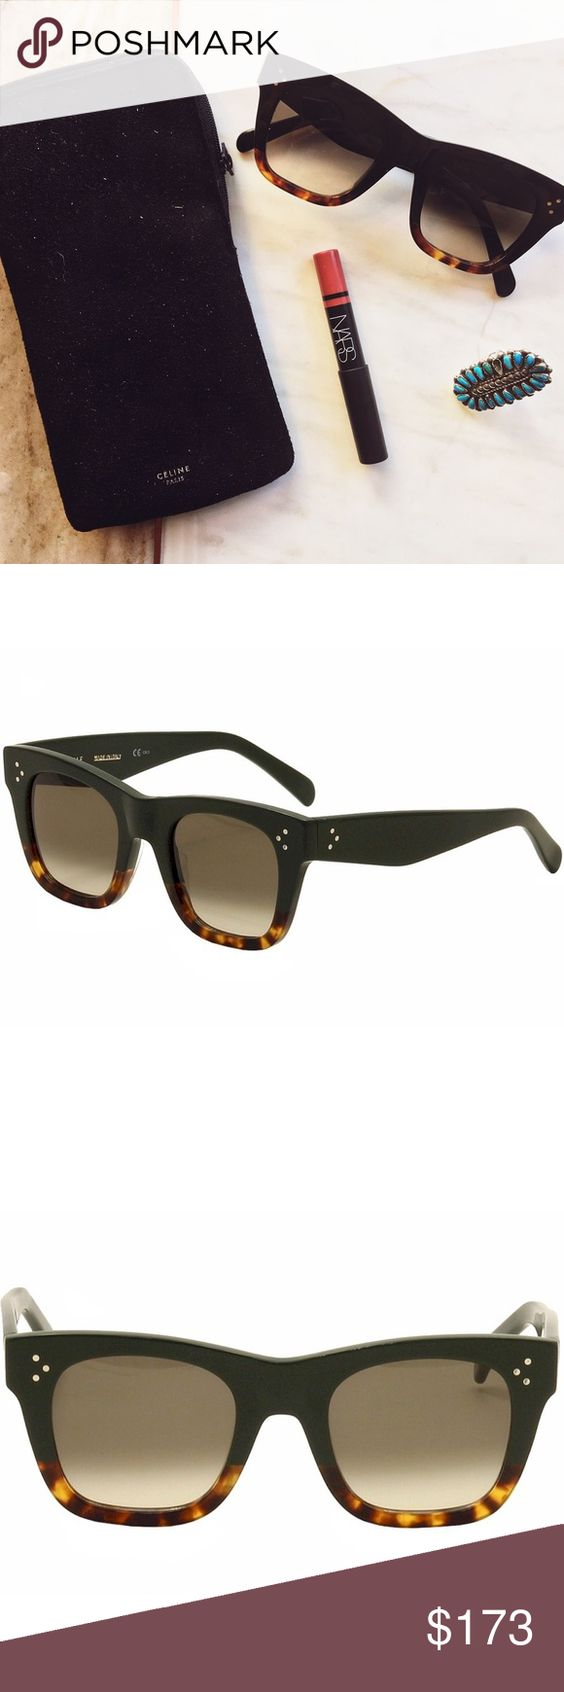 Céline Catherine Wayfarer Cat-eye Sunglasses Original Céline CATHERINE SMALL CL 41089/S Sunglasses. women's model , cat eye shape, 2016 Céline collection. acetate-rimmed glasses, black tortoise/grey brown shaded colour.  Selling as I thought I lost these, loved them so much and bought a second pair, and just found the originals. Condition is good with a few very light scratches on the lenses. Surface scratches throughout on the frames. Celine Accessories Glasses